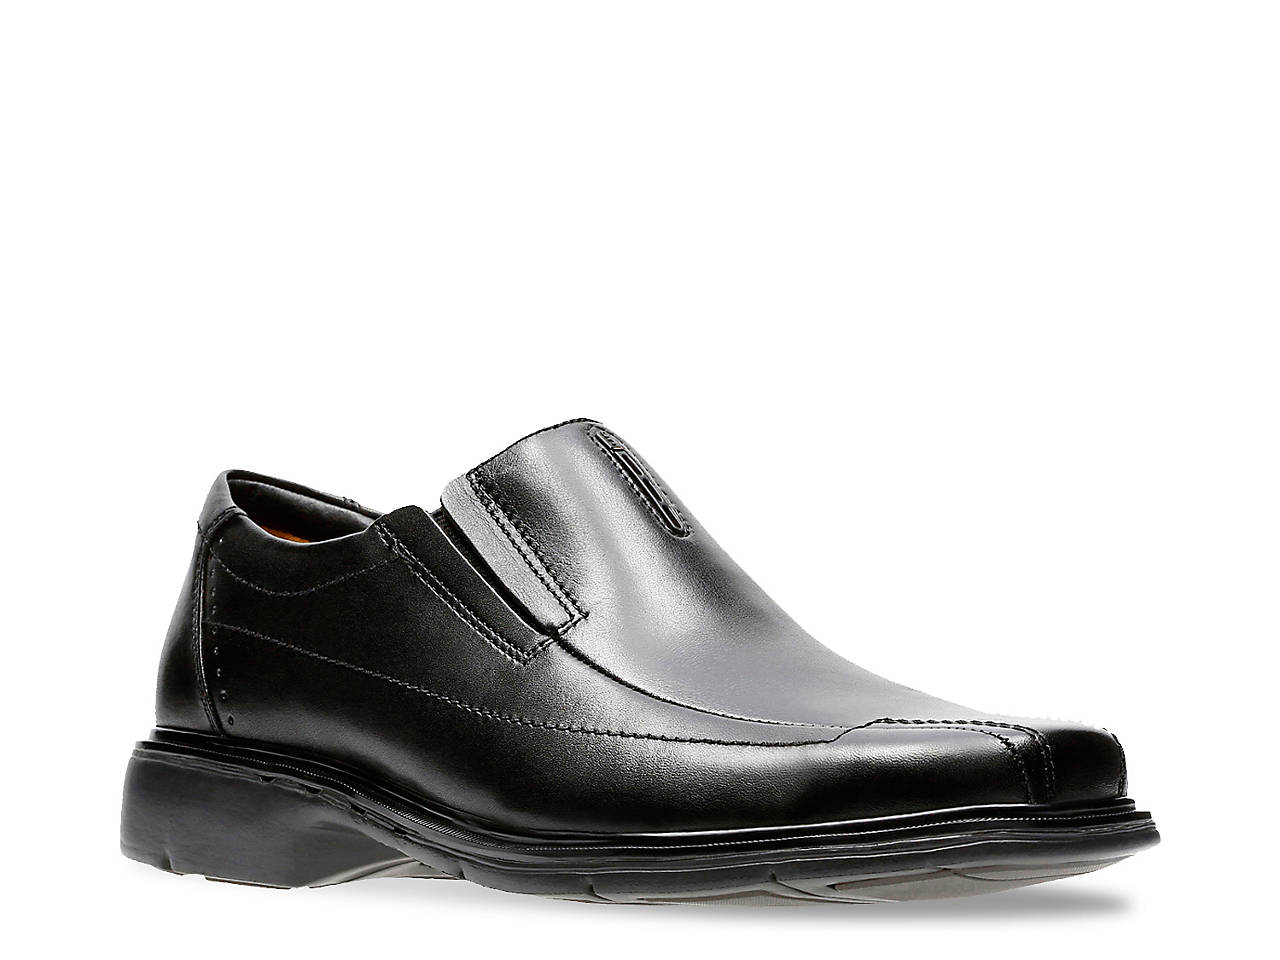 real deal special selection of On Clearance Unstructured Un.Sheridan Ro Slip-On